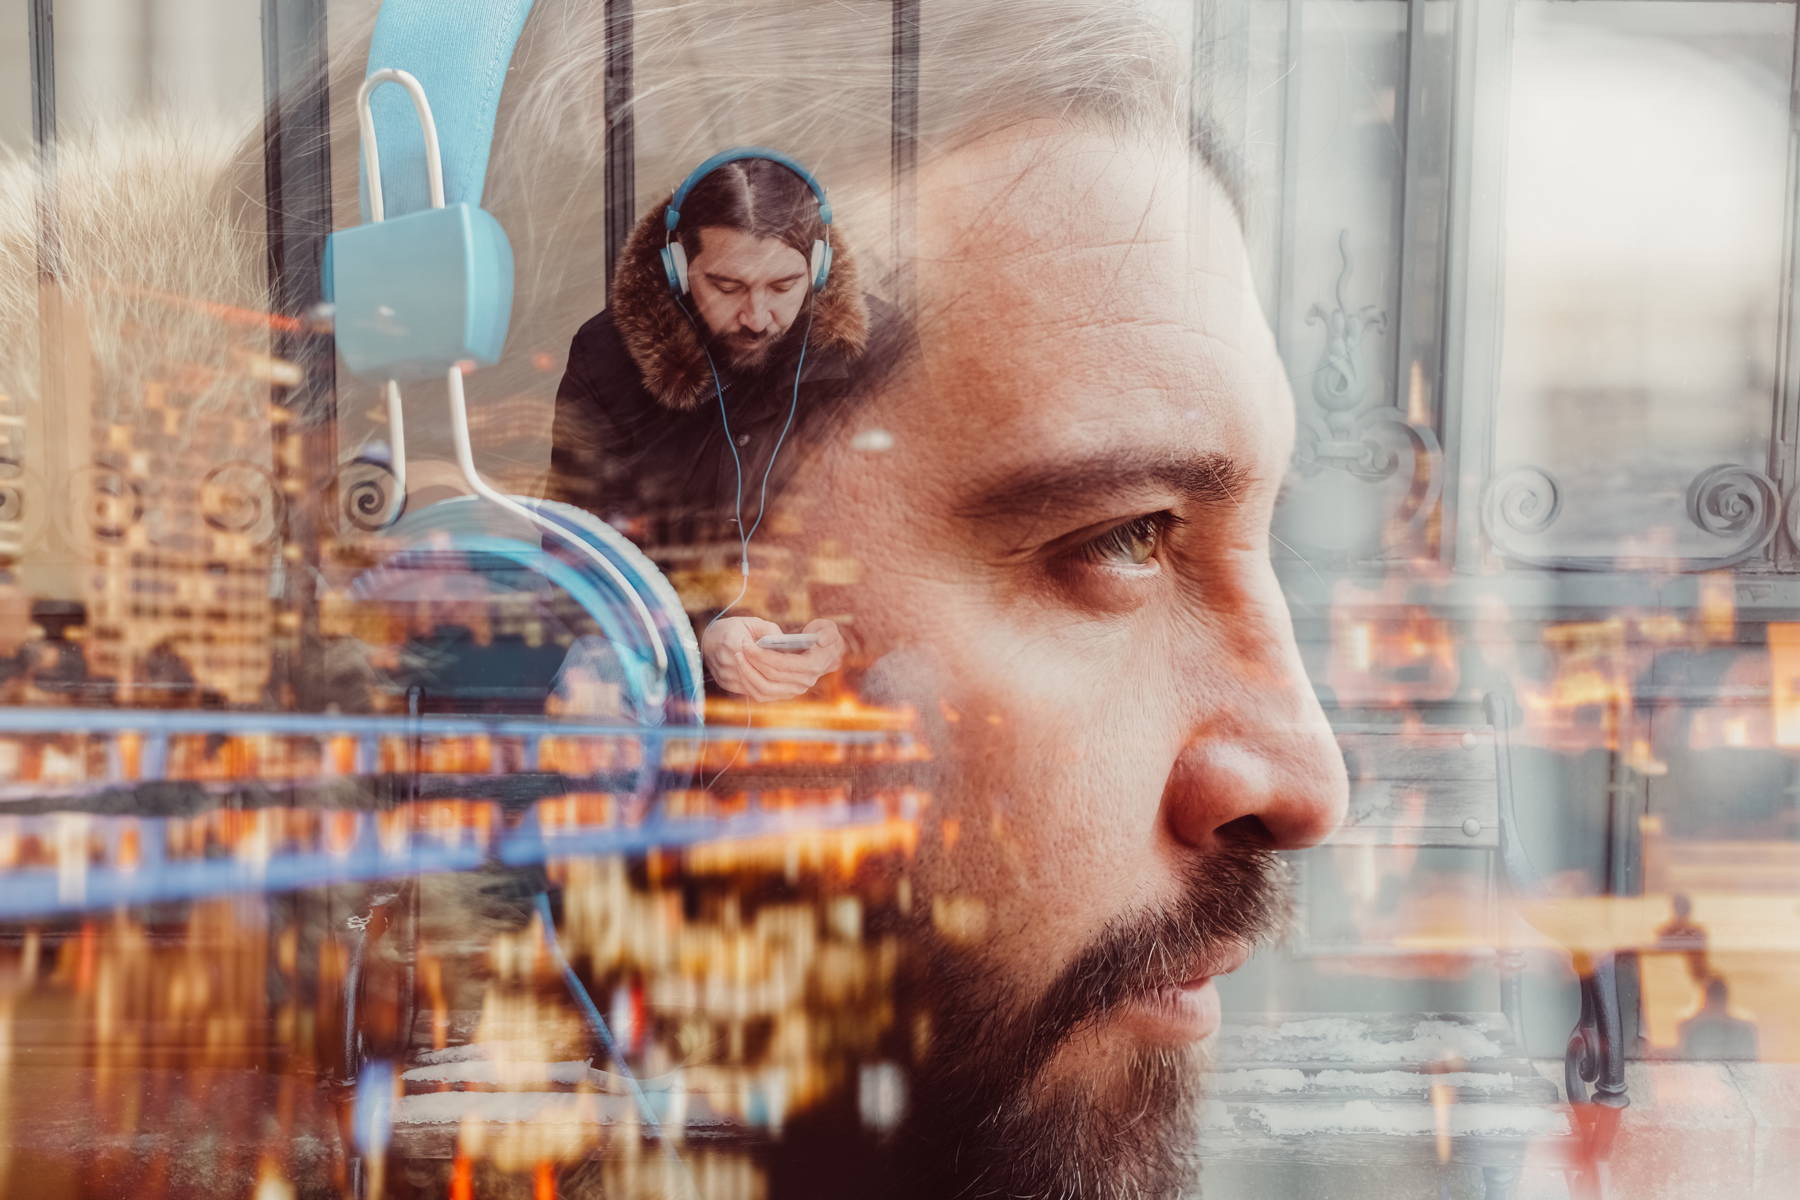 Multiple exposure of man with headphones